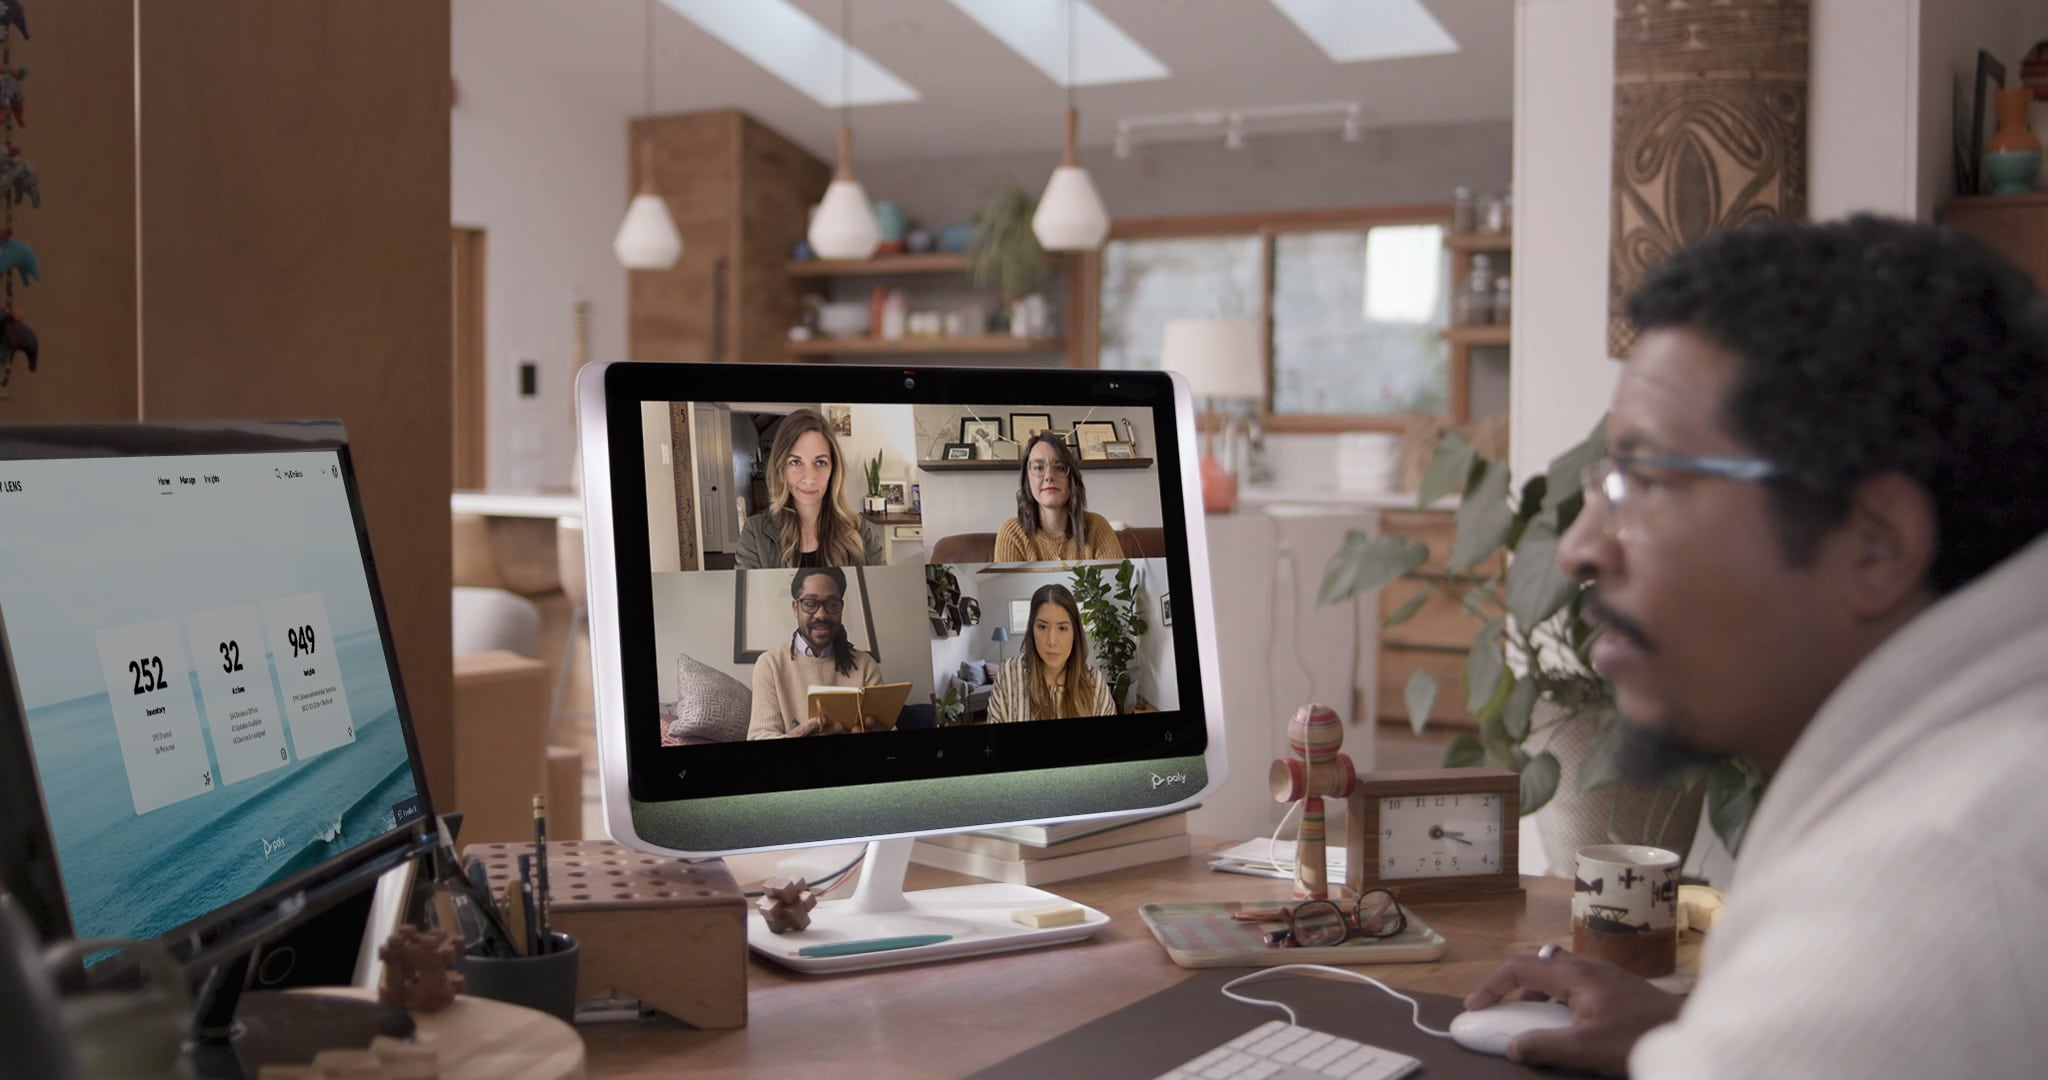 Poly's New Studio P Series, The New Work from Home Solution